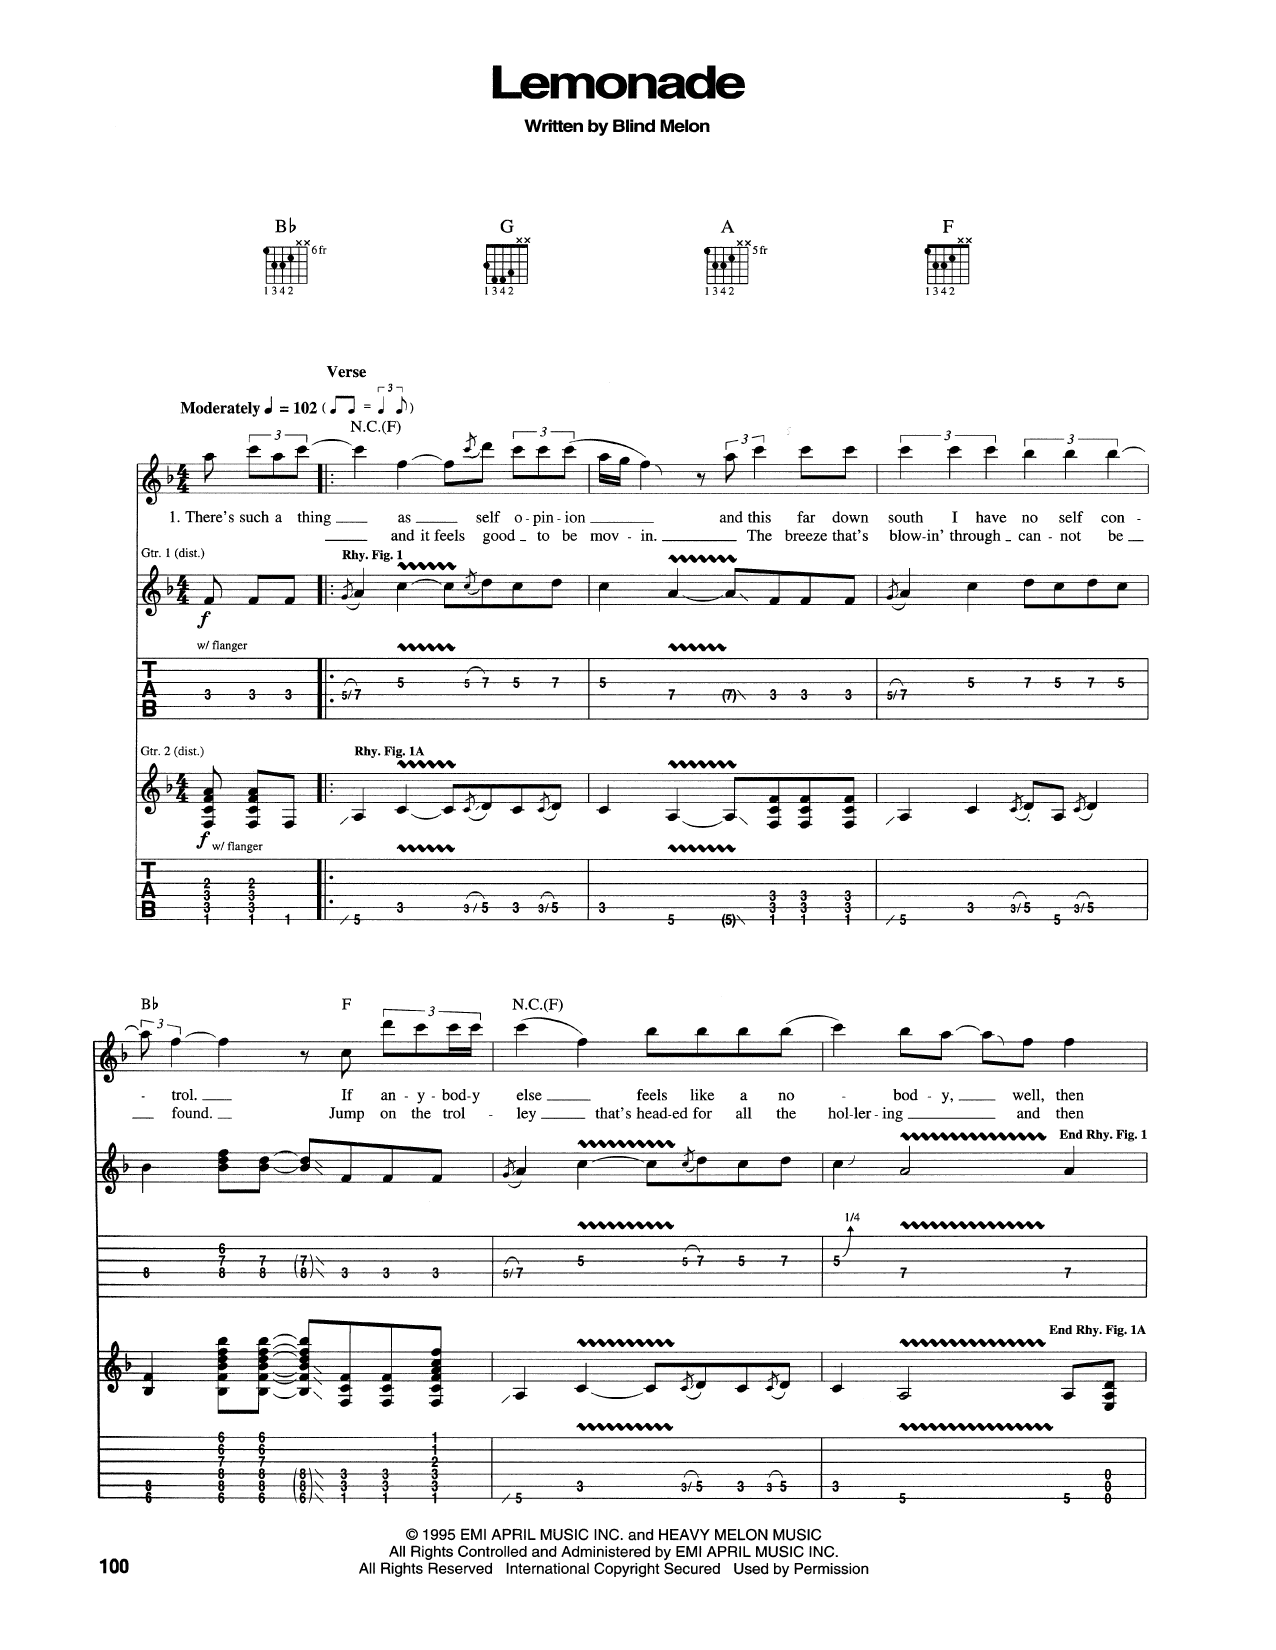 Blind Melon Lemonade sheet music notes and chords. Download Printable PDF.